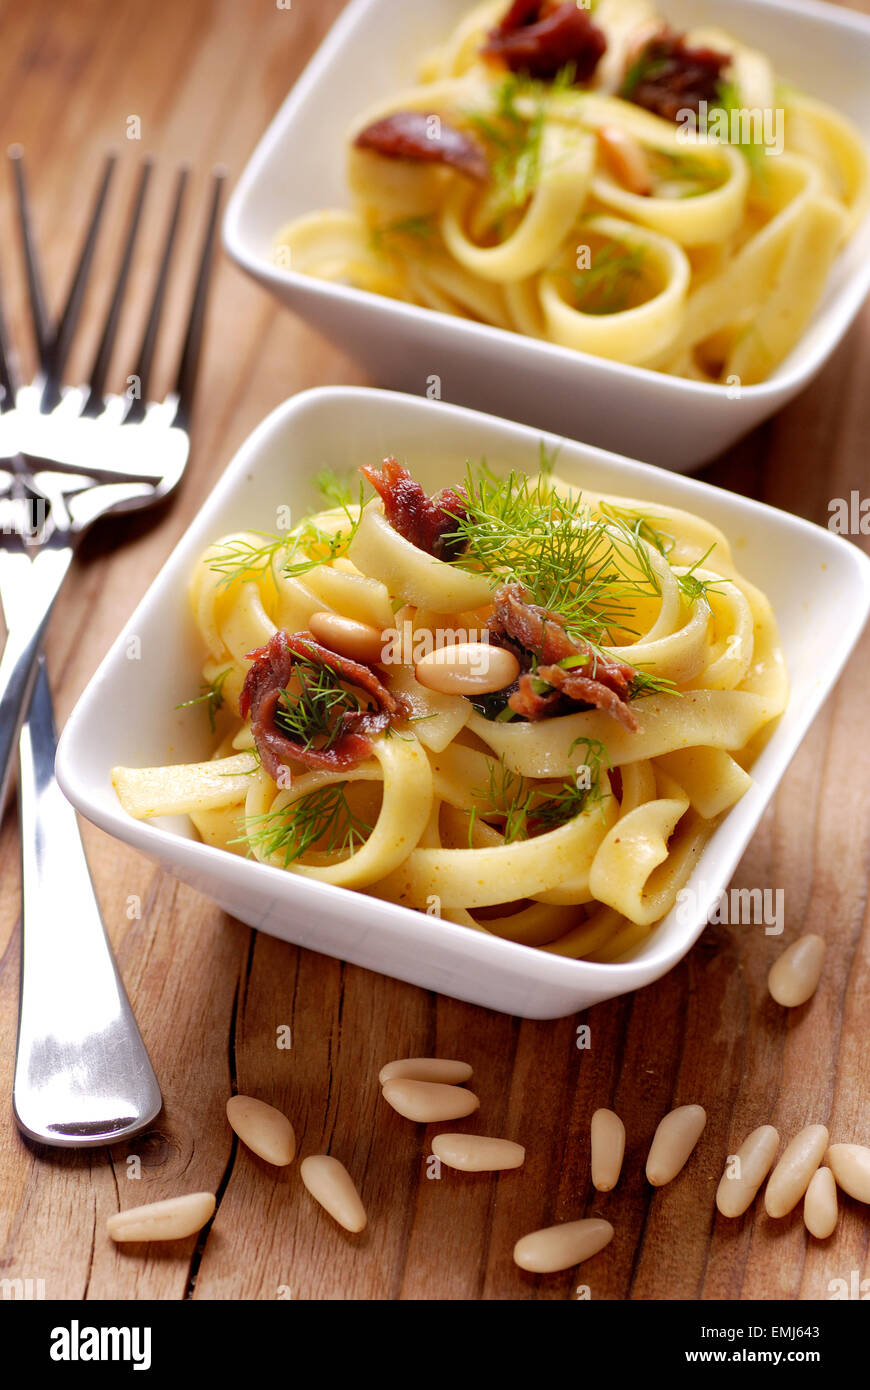 noodles with anchovies, pine nuts and fennel in white bowl - Stock Image